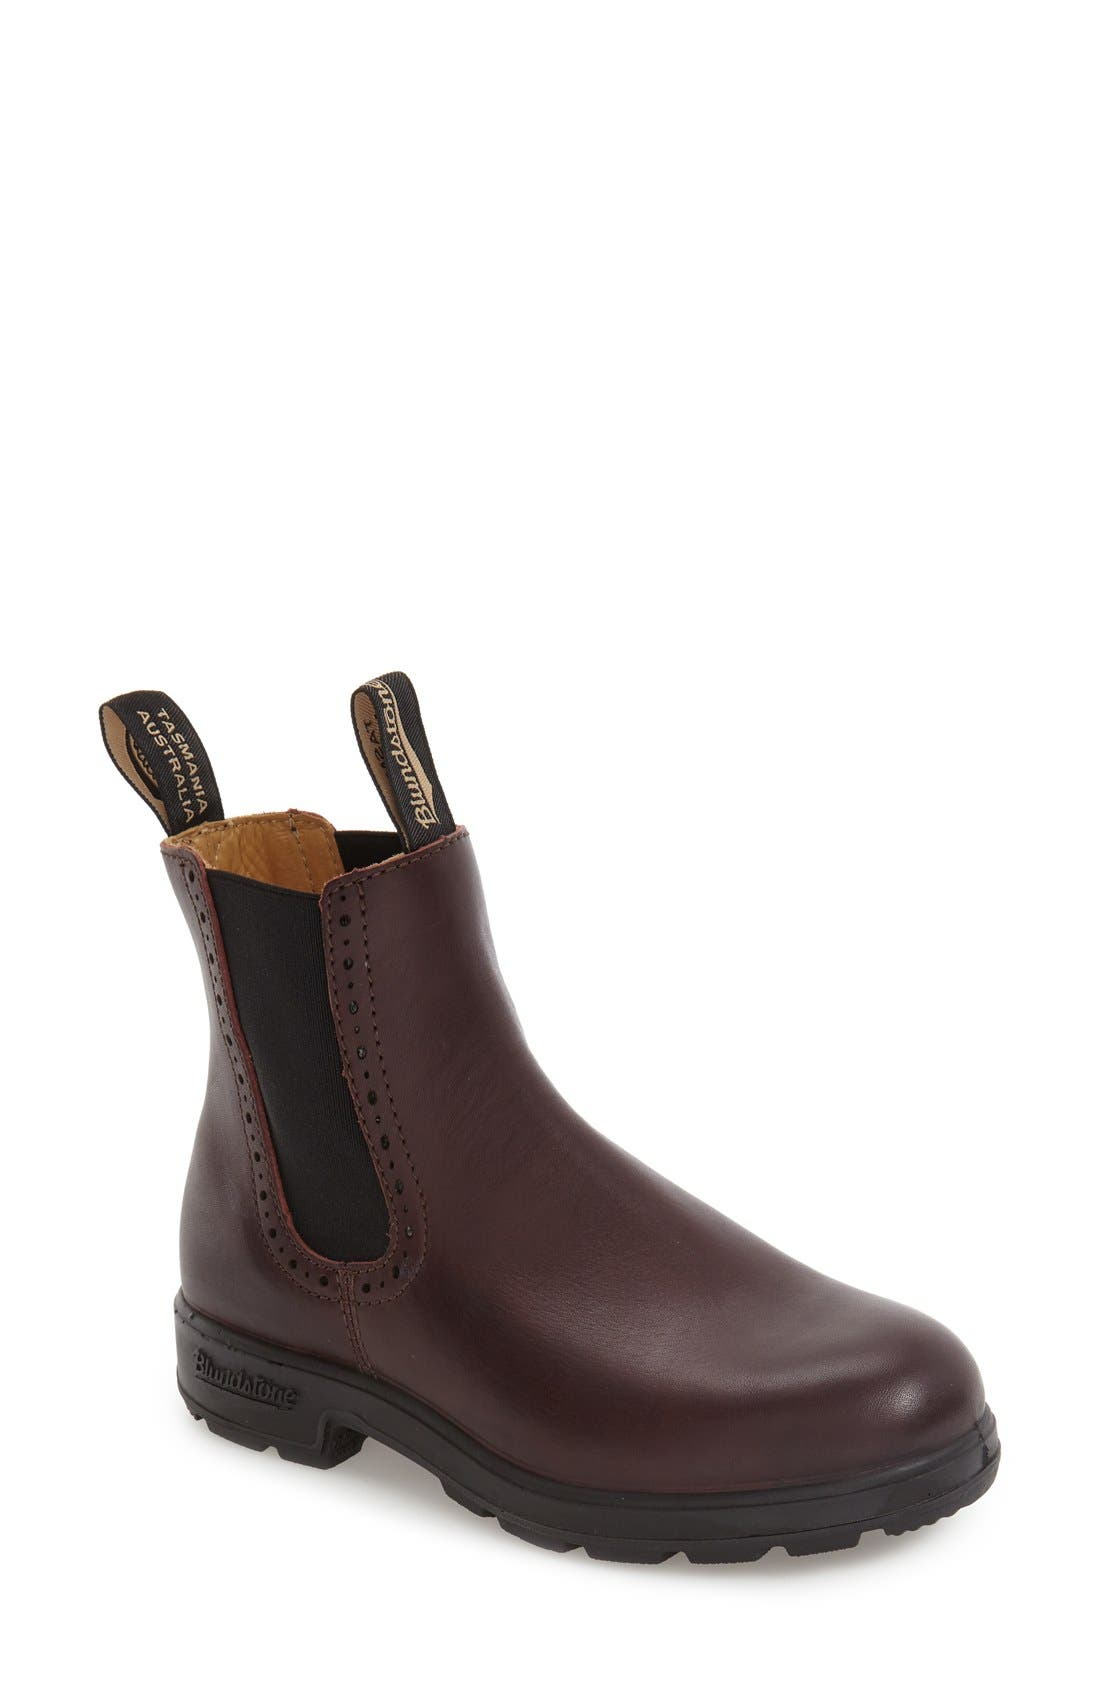 Footwear 'Original Series' Water Resistant Chelsea Boot,                             Main thumbnail 1, color,                             Shiraz Leather